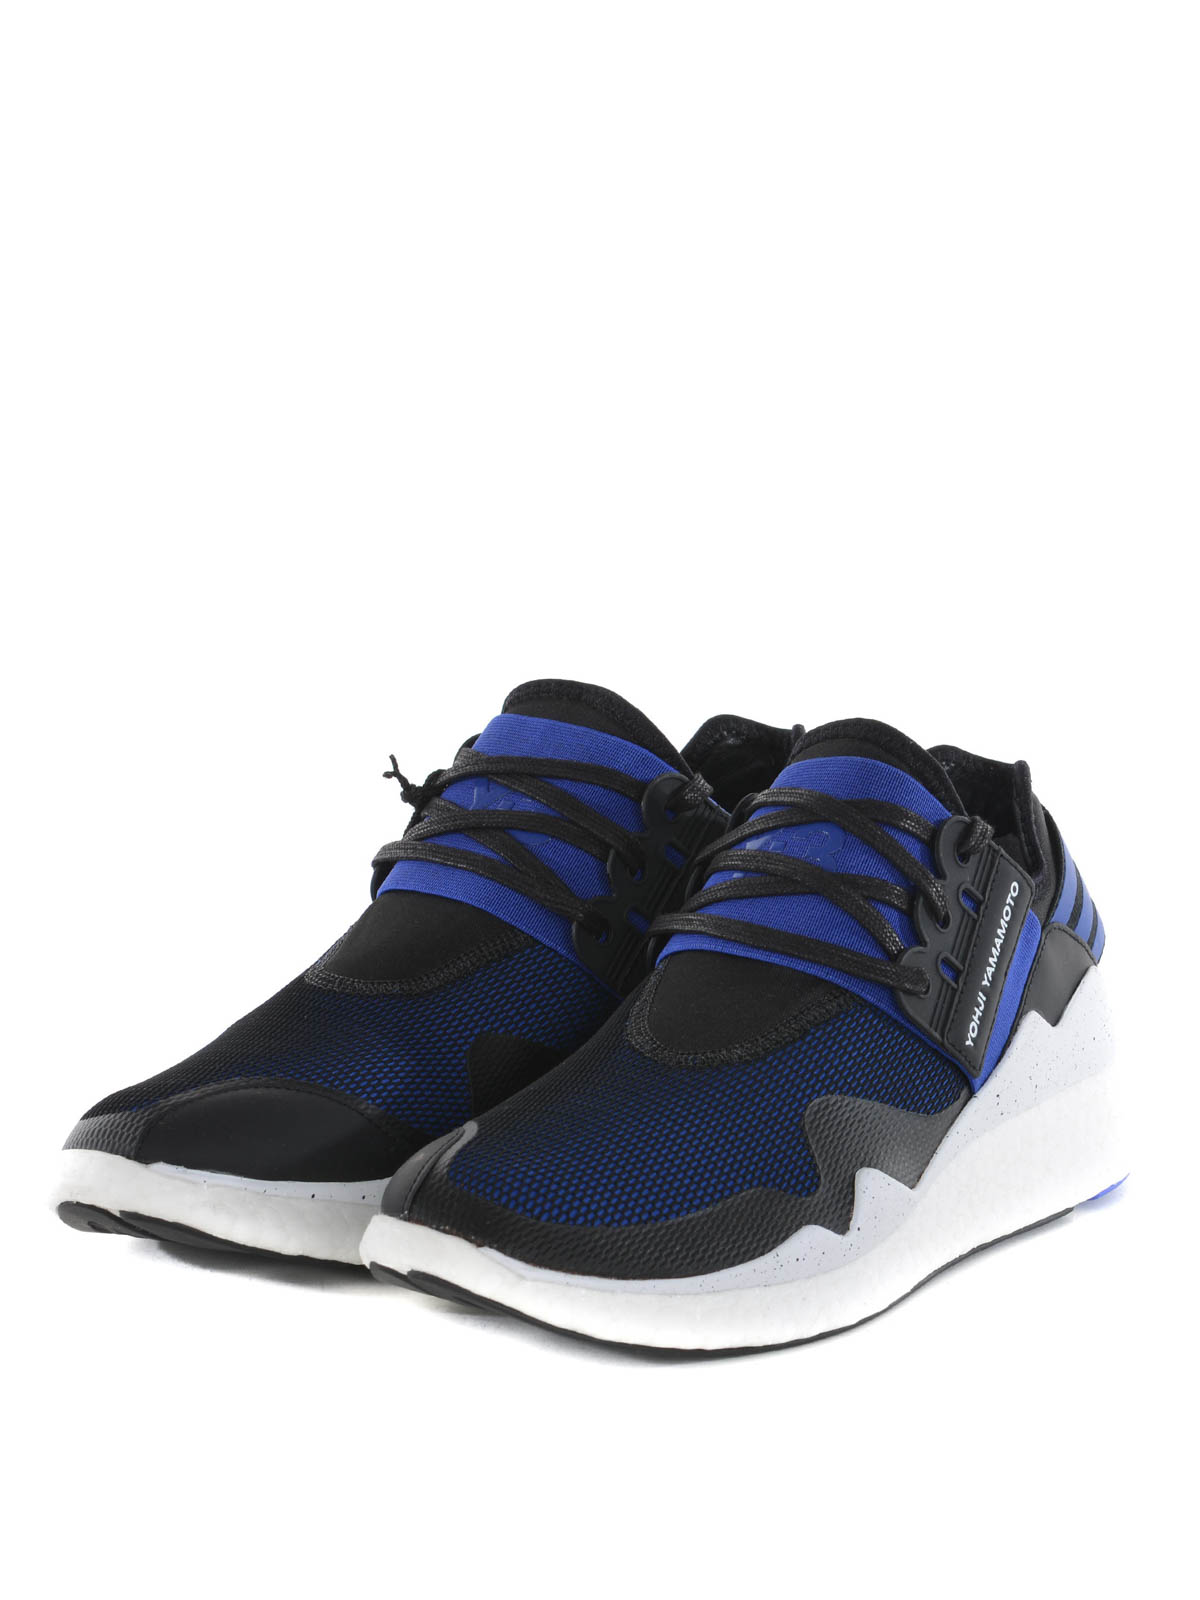 retro boost sneakers by adidas y 3 trainers ikrix. Black Bedroom Furniture Sets. Home Design Ideas